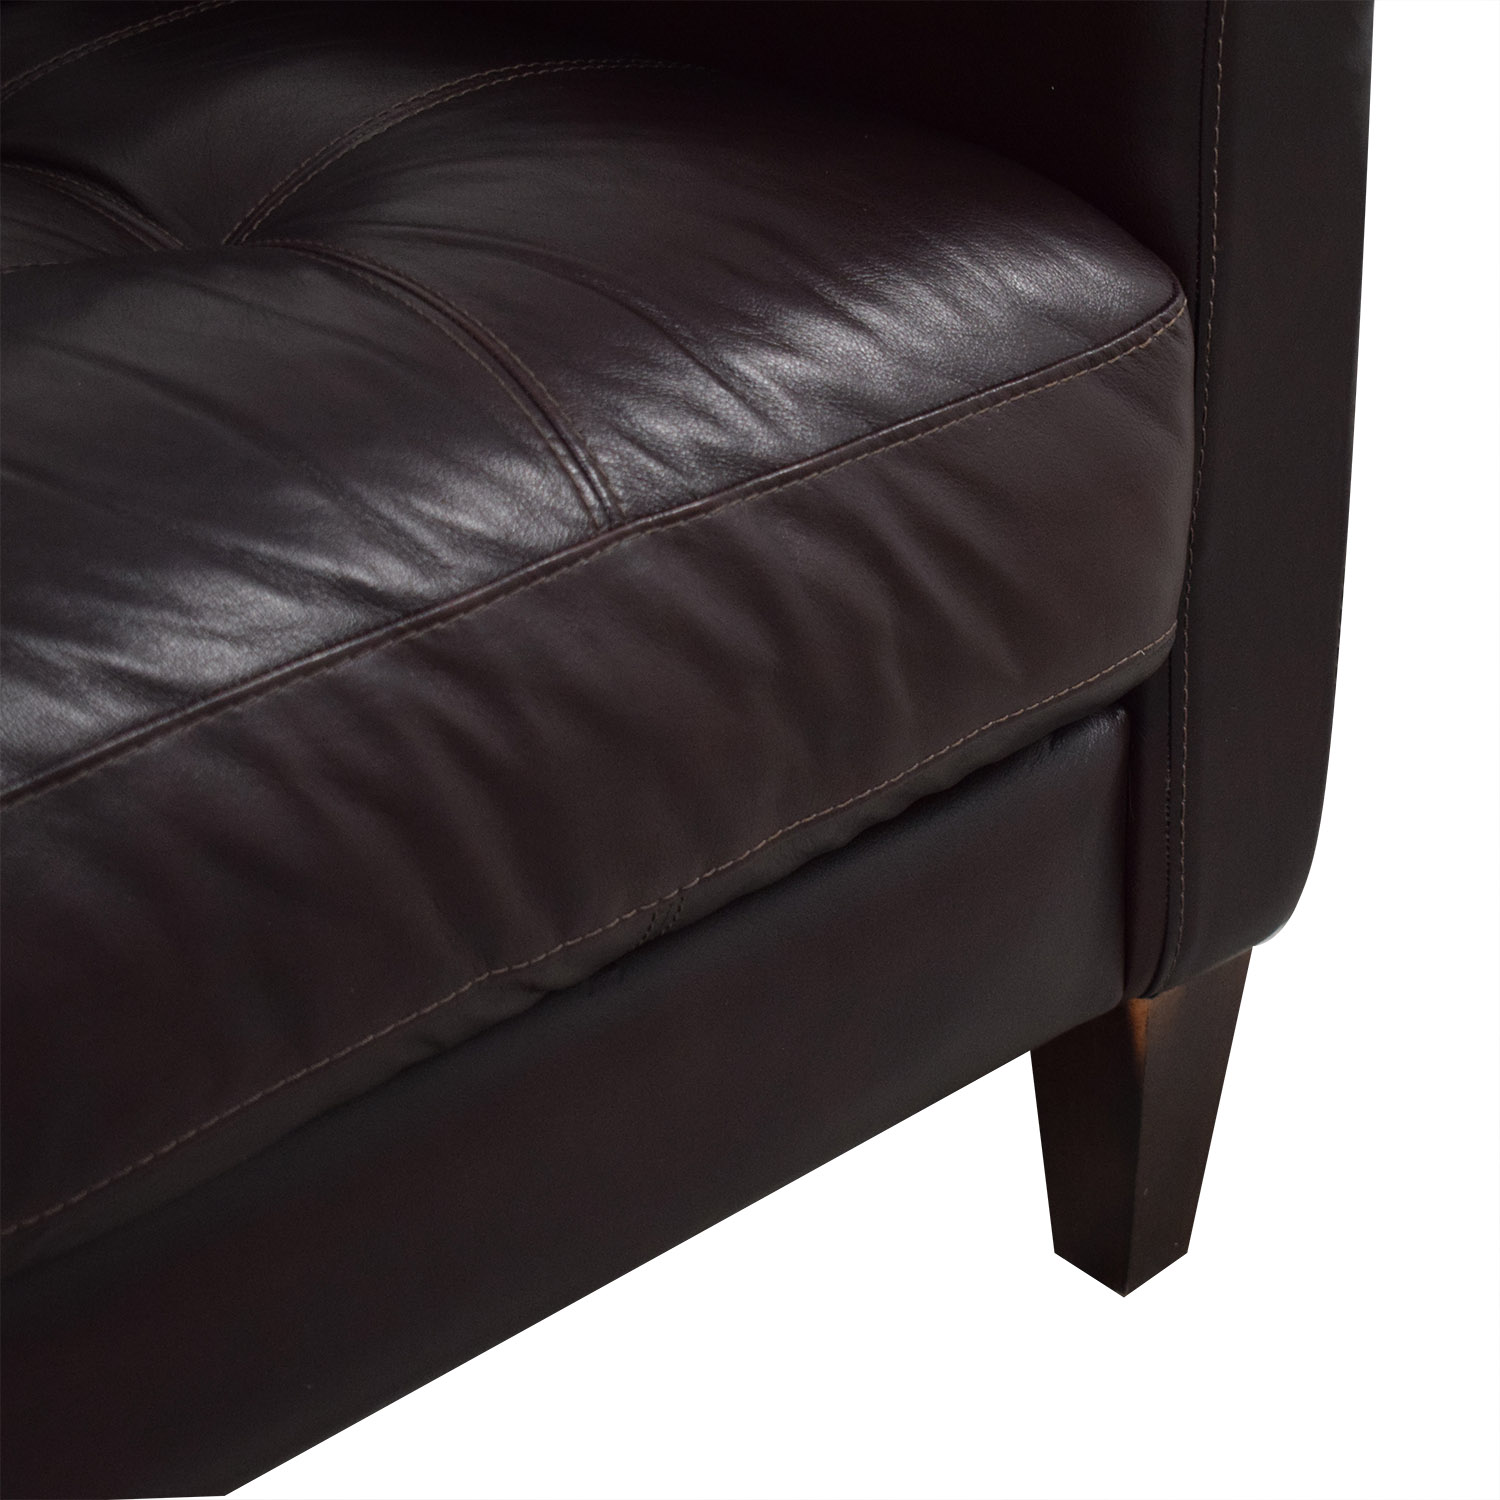 buy Chateaux  d'Ax Tufted Lounge Chair Chateau d'Ax Chairs